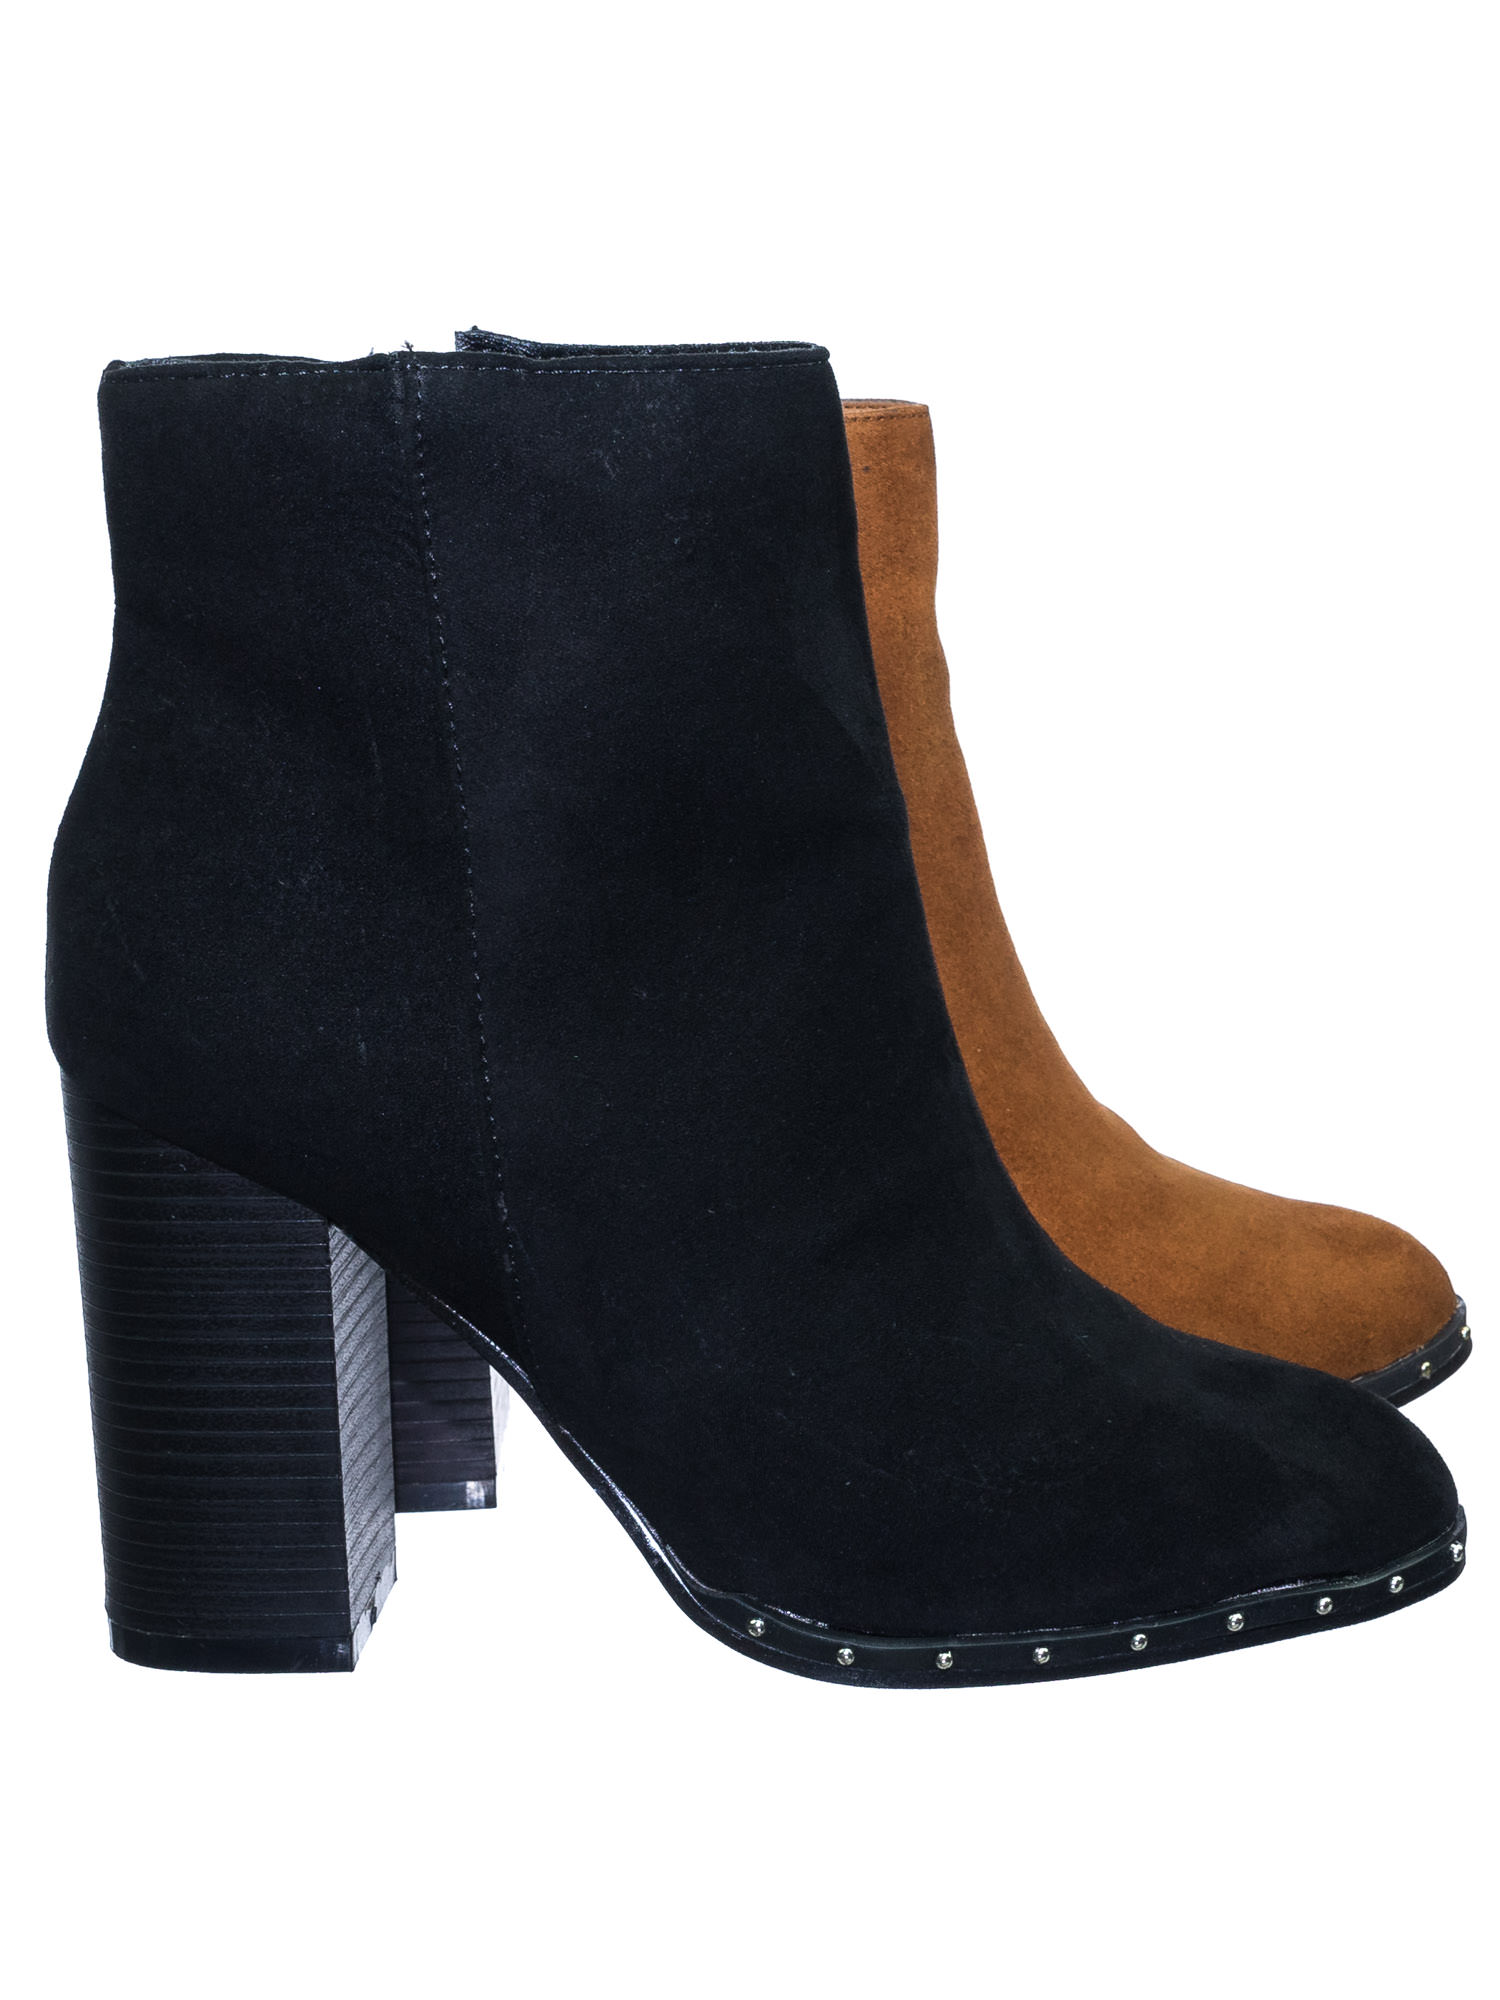 Upside33 by Bamboo, Industrial Chic Block Heel Metal Micro Stud Ankle Bootie Dress Boots